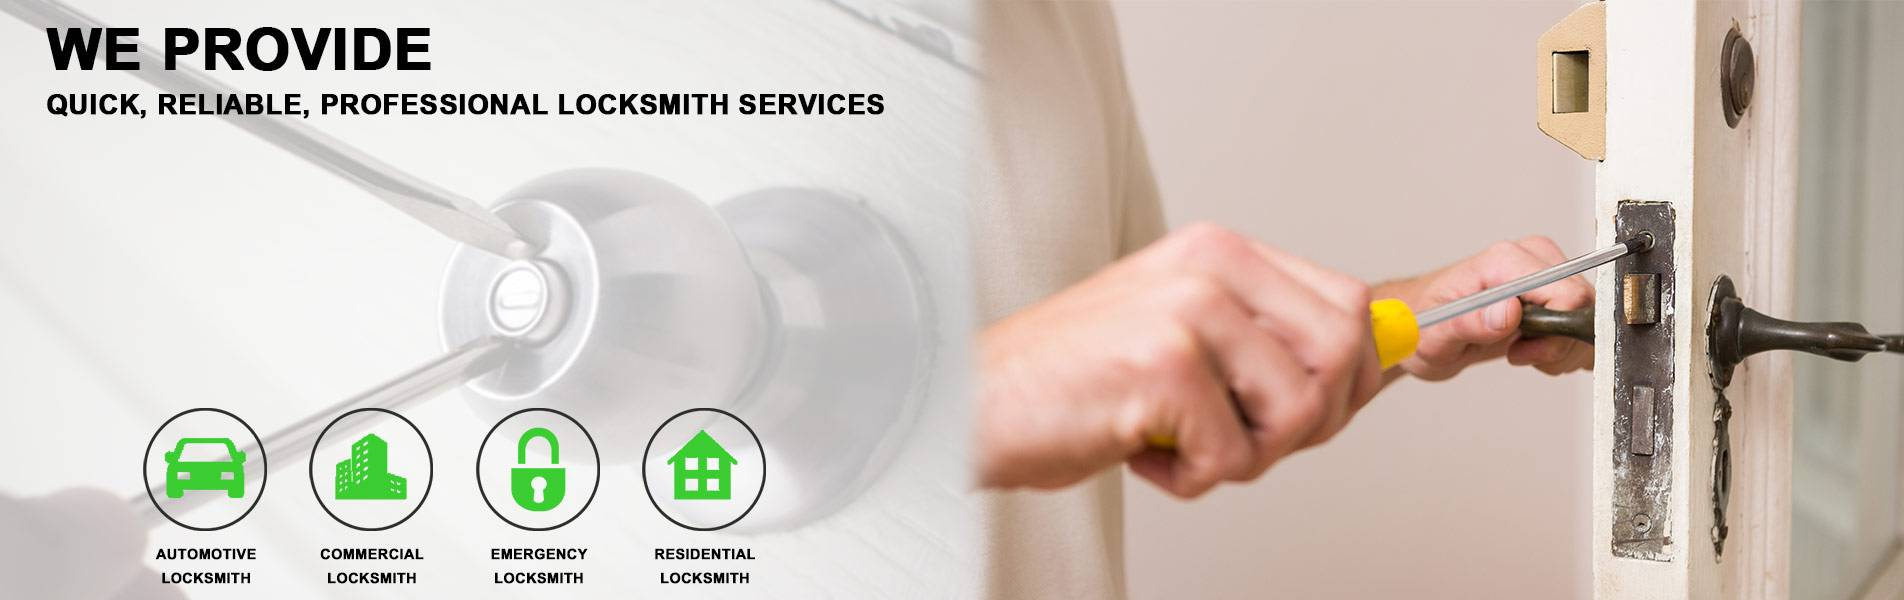 Expert Locksmith Services Lockbourne, OH 614-467-4873